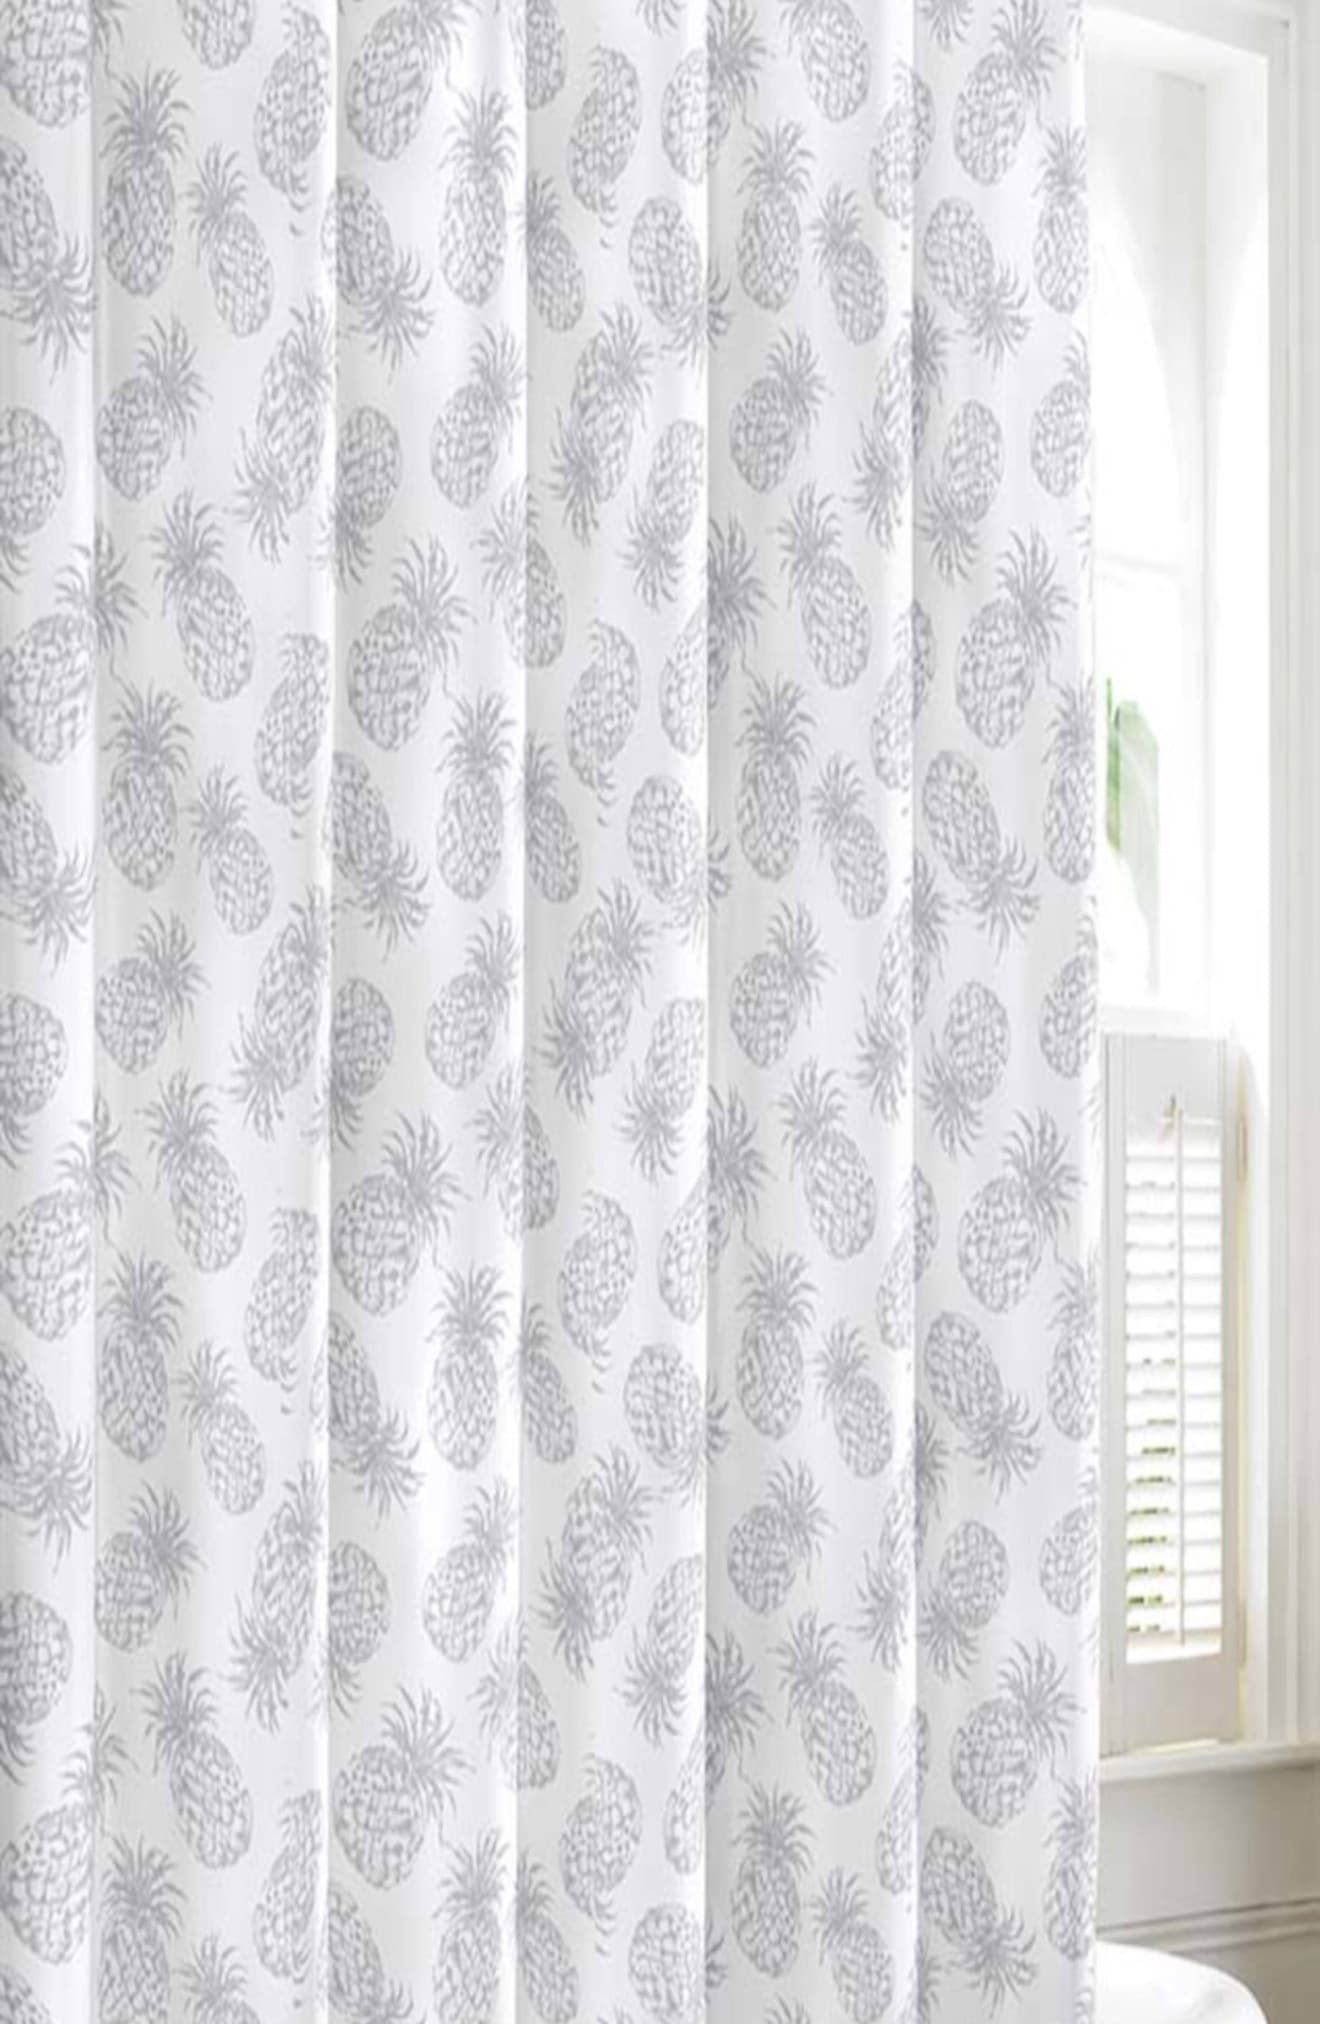 Tommy Bahama Pineapple Shower Curtain Size One Size Grey In